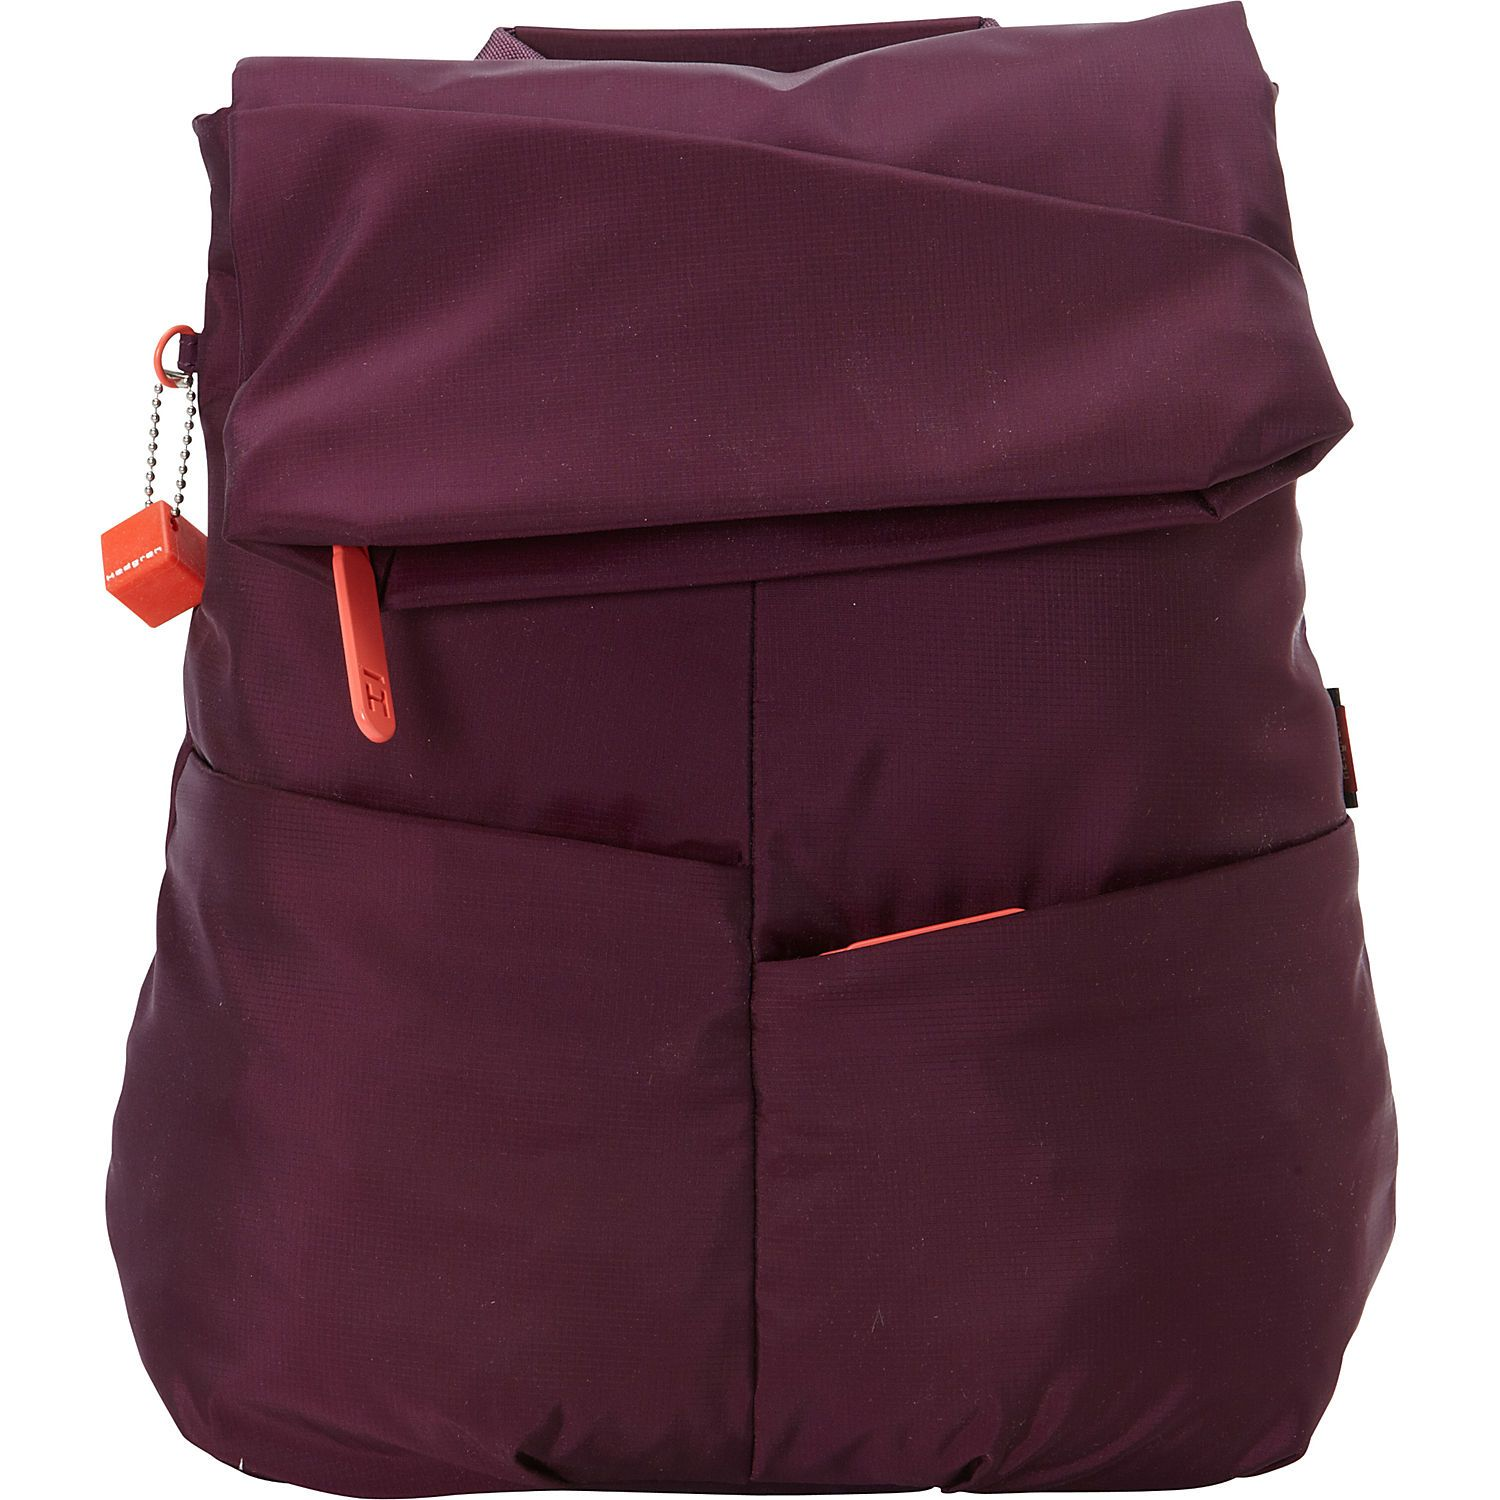 Hedgren Pilates Backpack - eBags.com